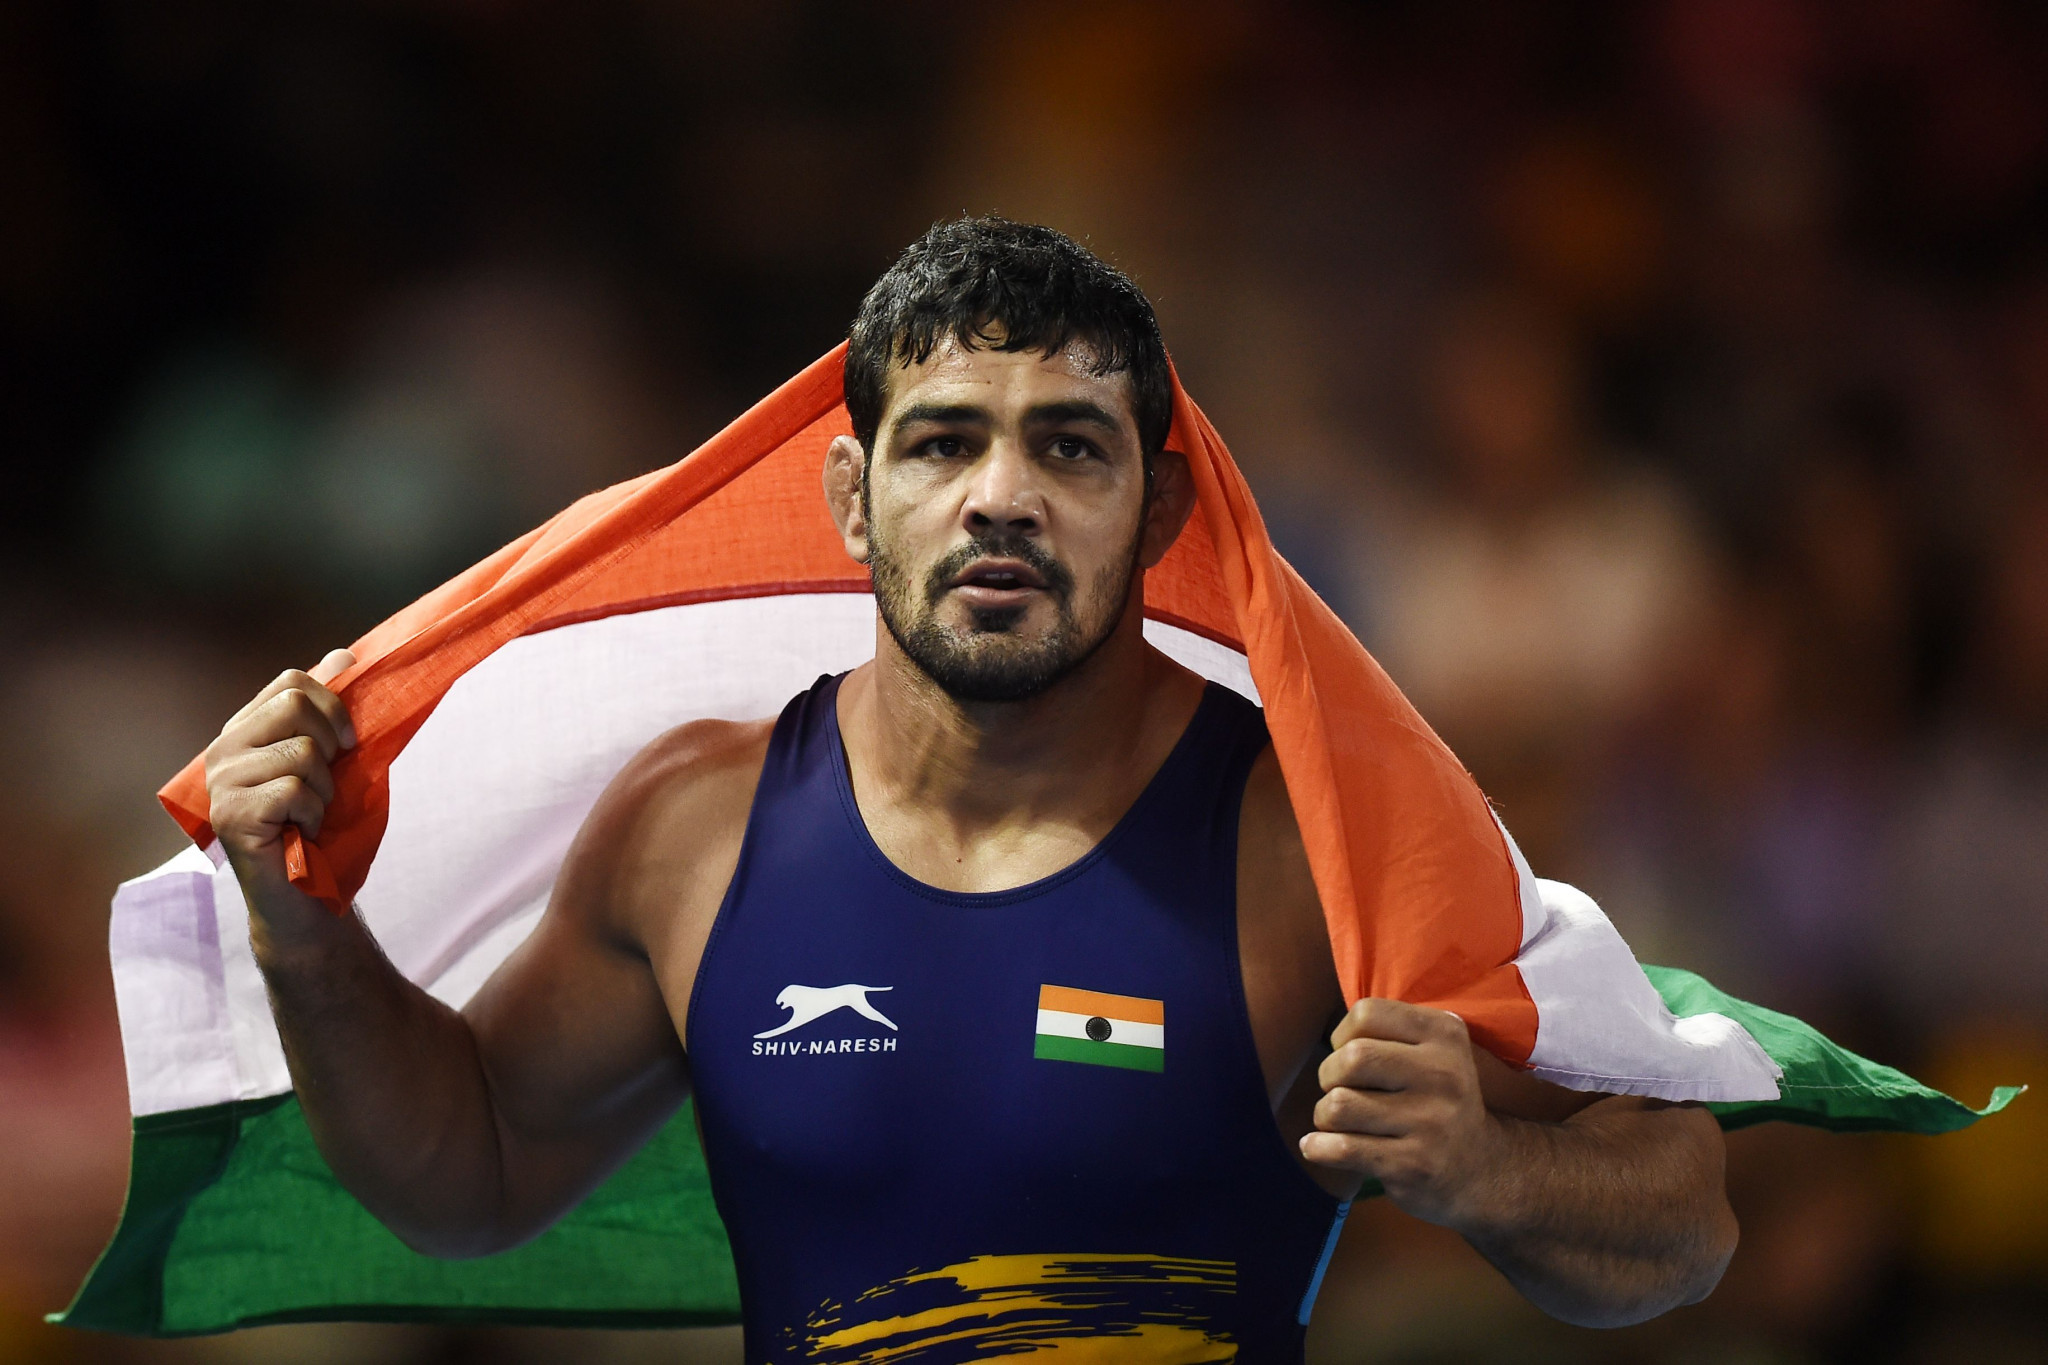 India's Sushil Kumar won the men's 74kg at Gold Coast- the third Commonwealth Games gold of his career